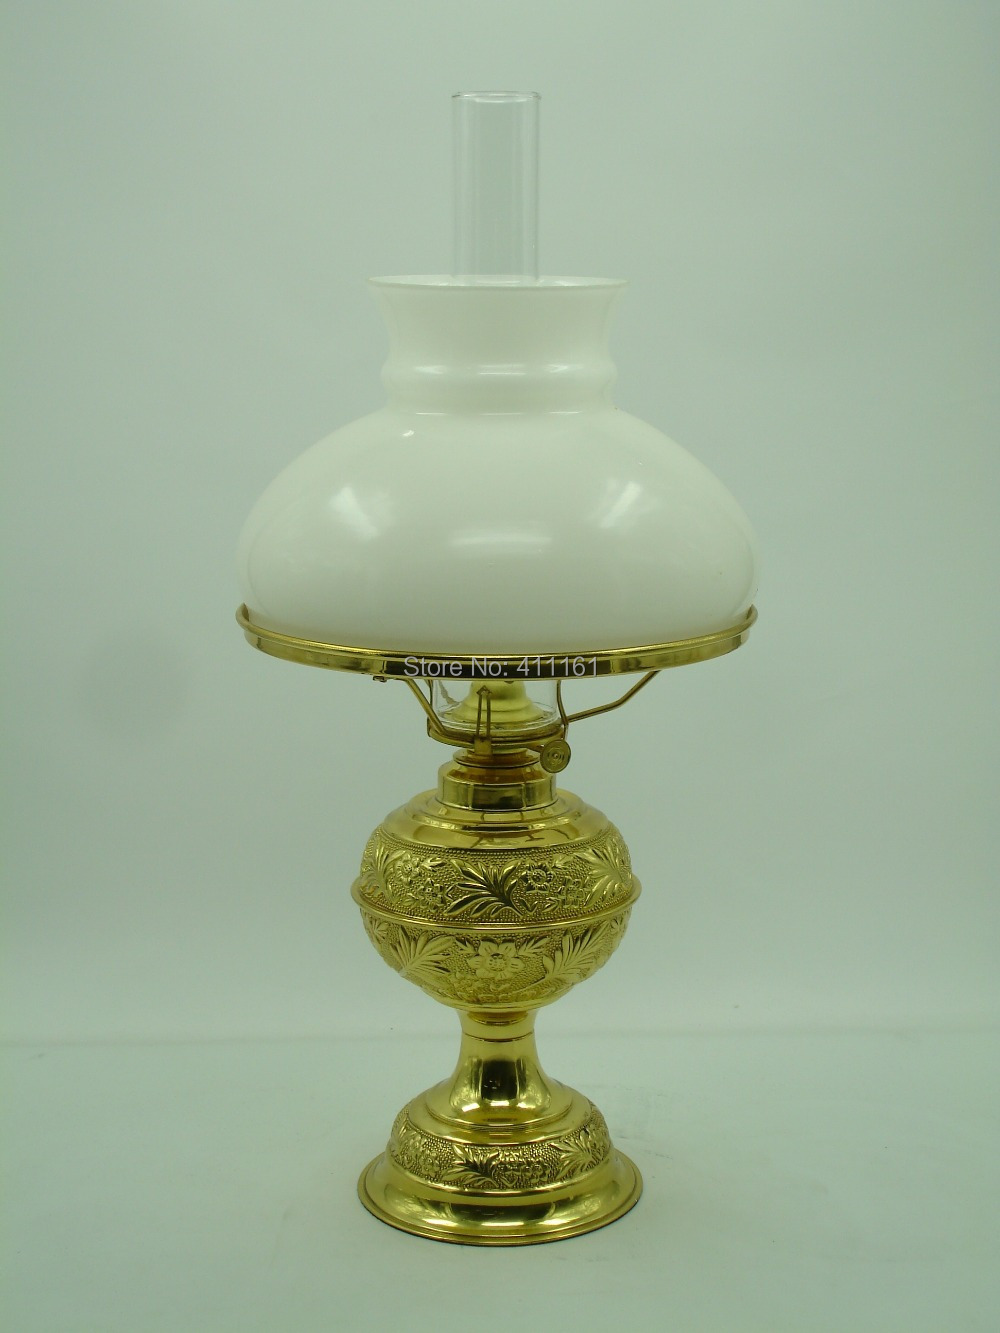 Deluxe Brass Evening Lamp Antique brass oil lamp lighting lantern paraffin lamp collection #130(China (Mainland))